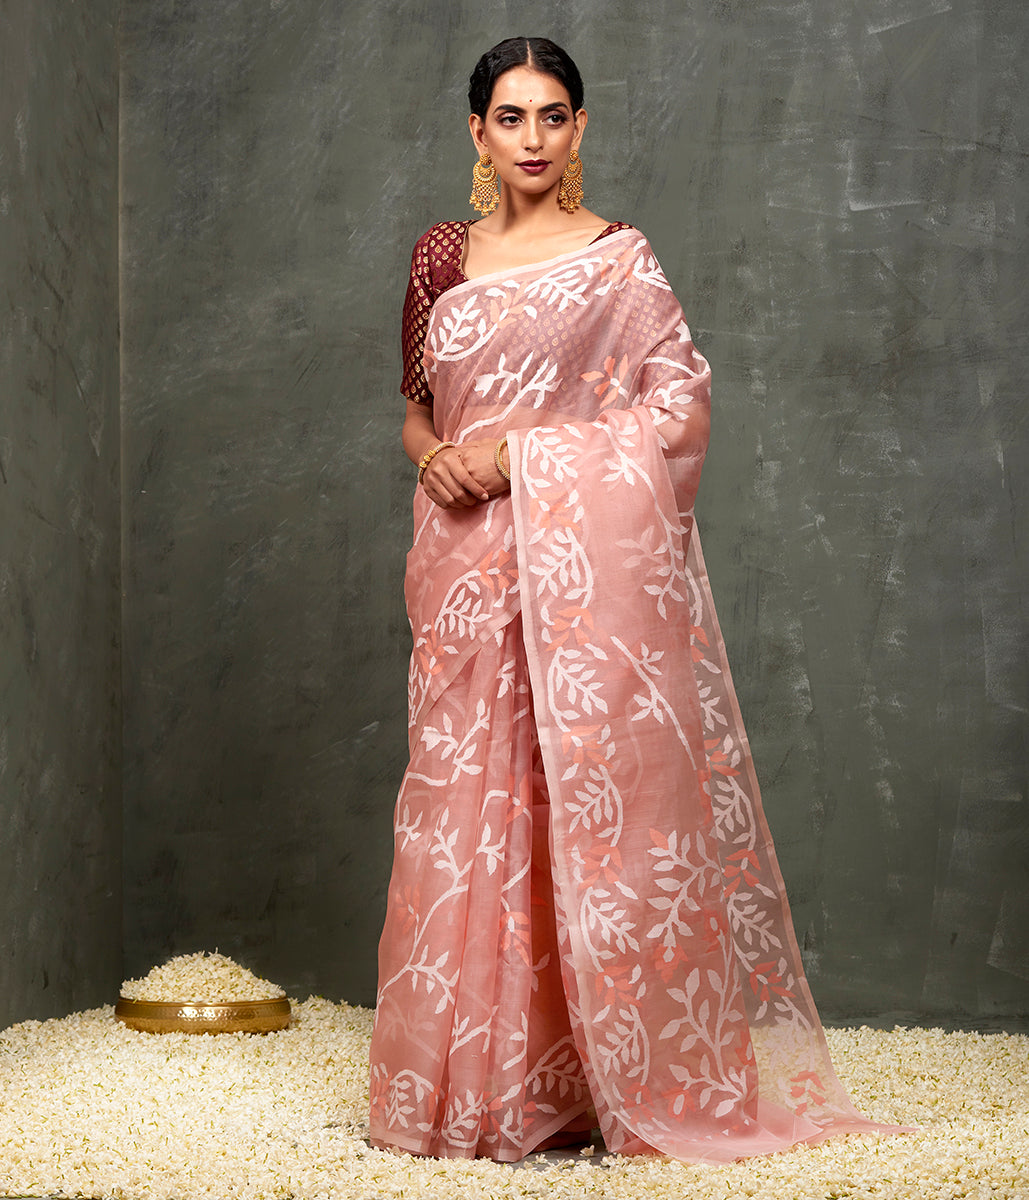 Handwoven Peach Muslin Dhakai Jamdani Saree with White and Peach Thread Work